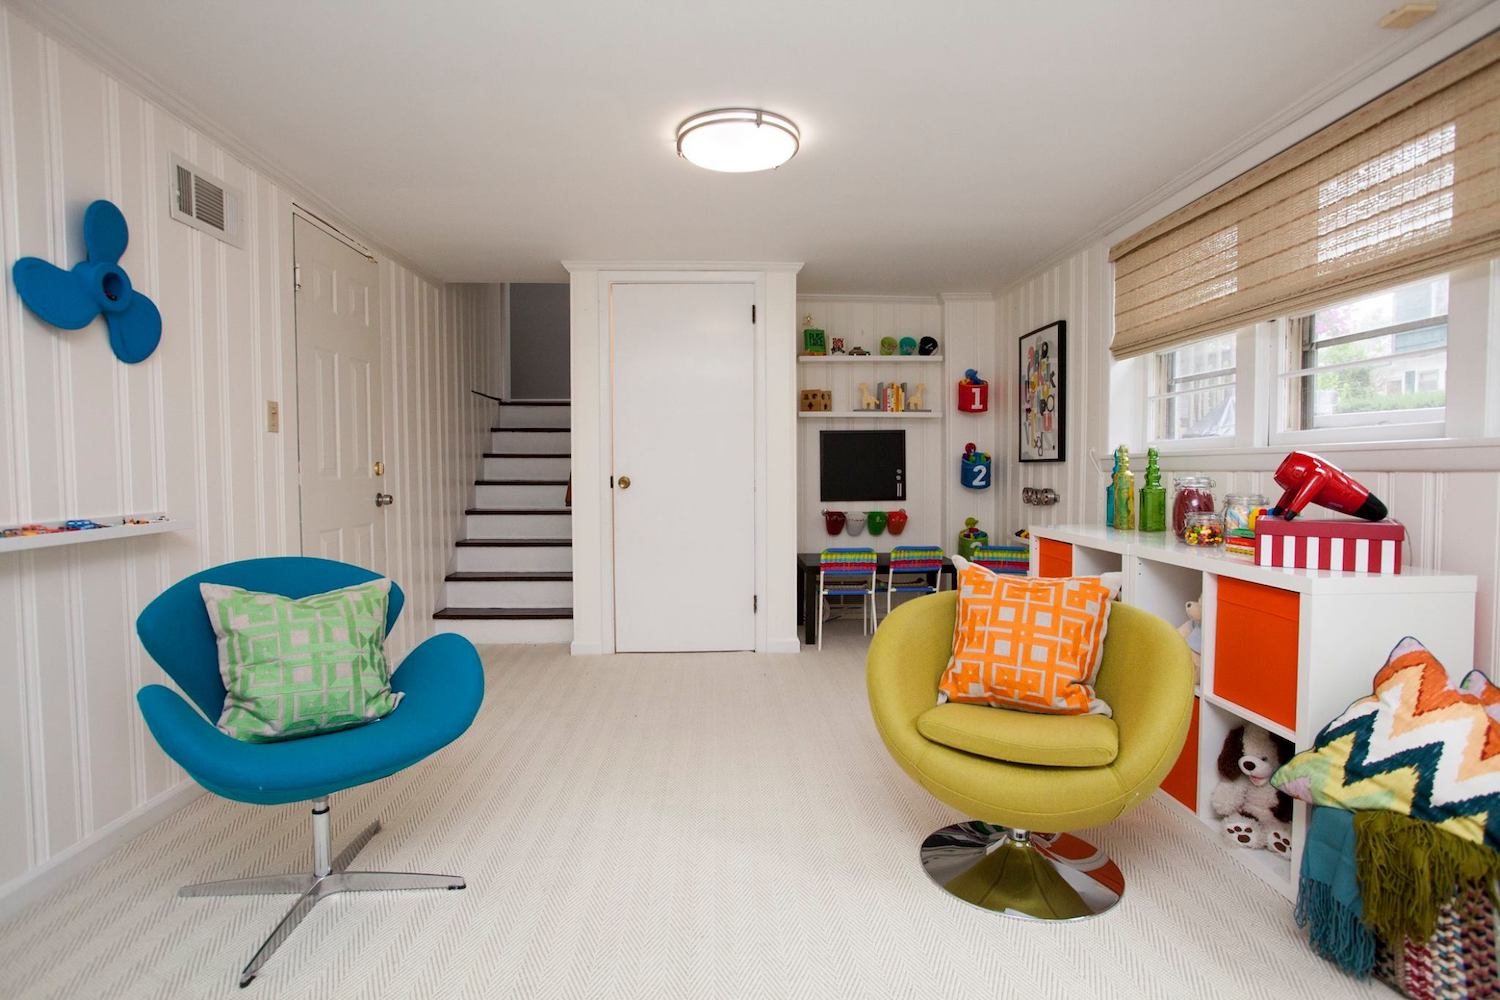 1 Carpetrends Projects Property Brothers